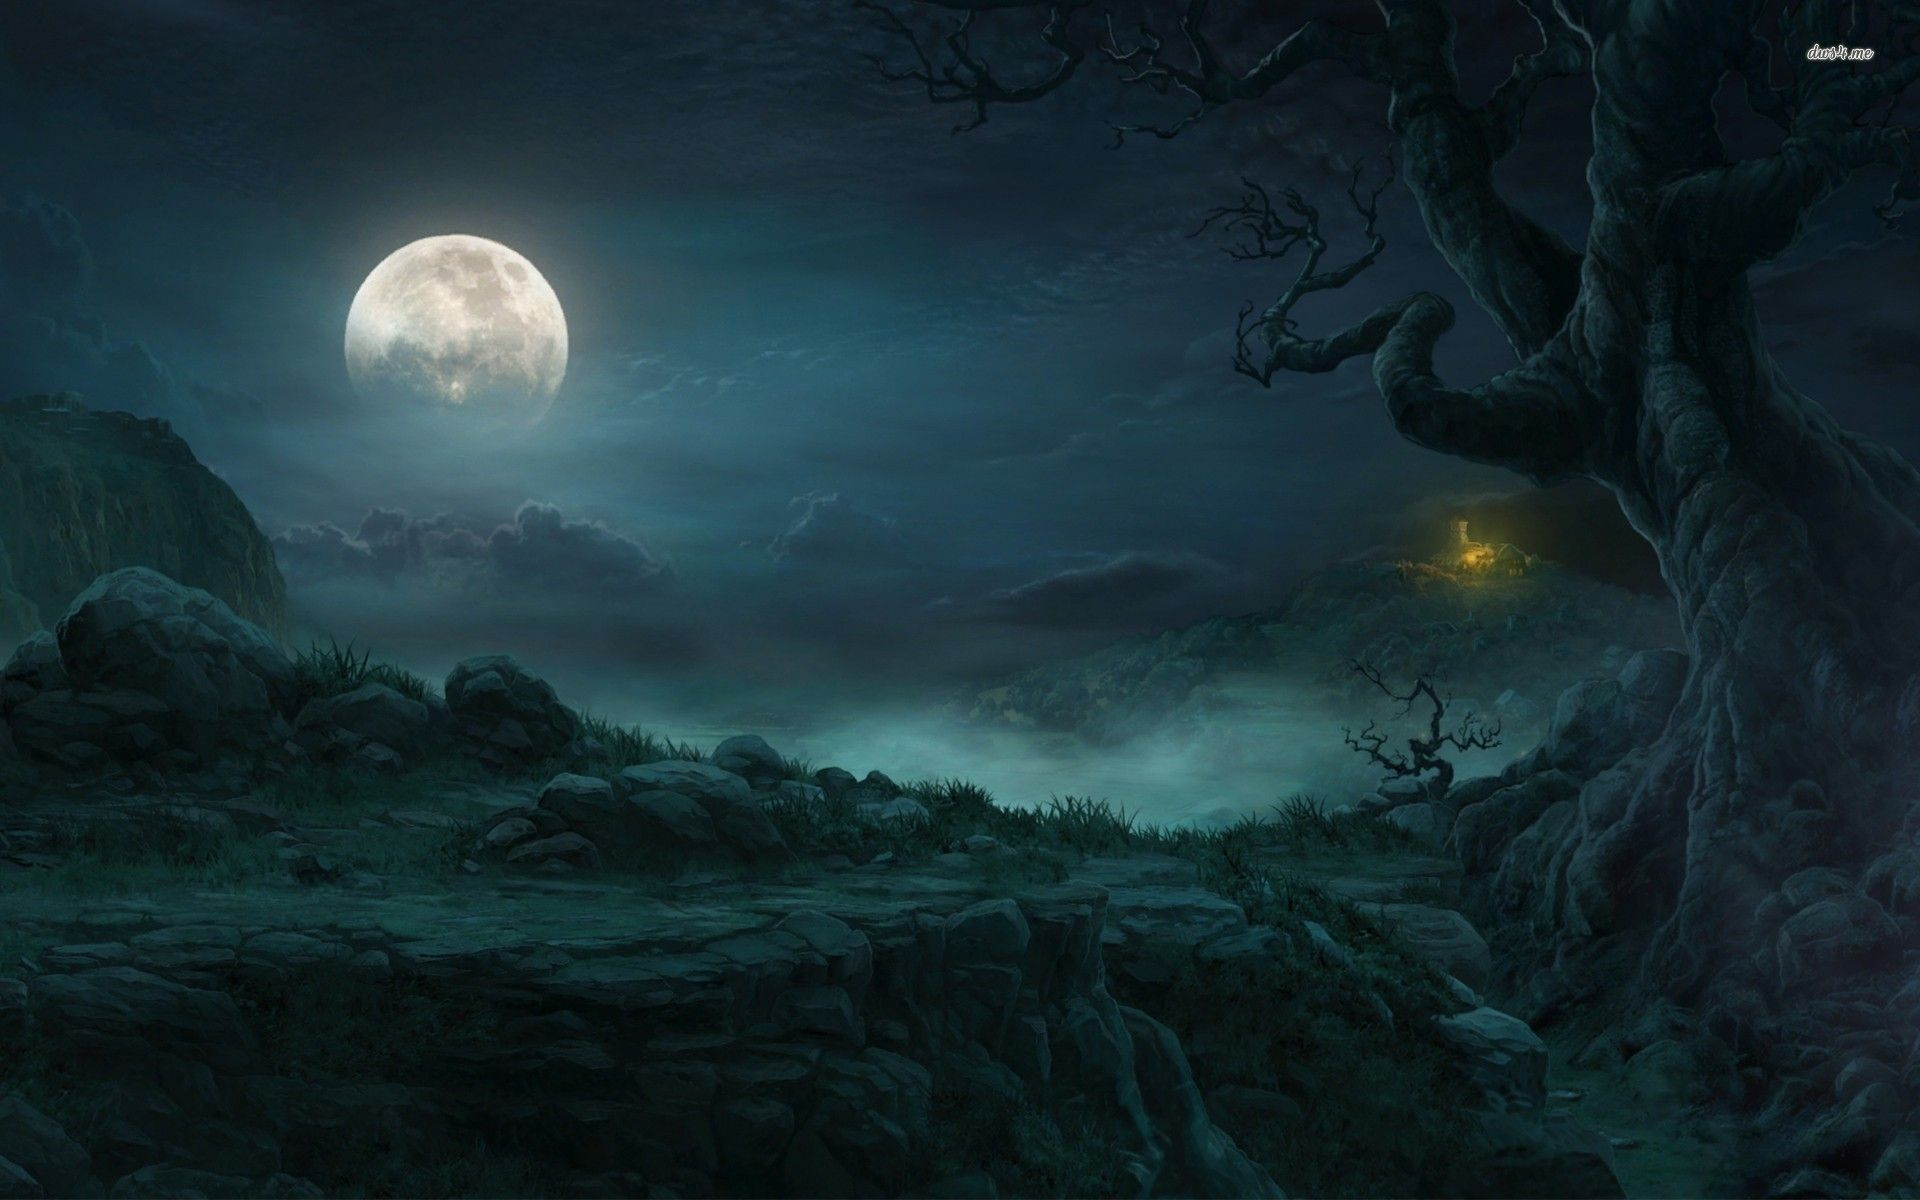 Moon forest fantasy photo